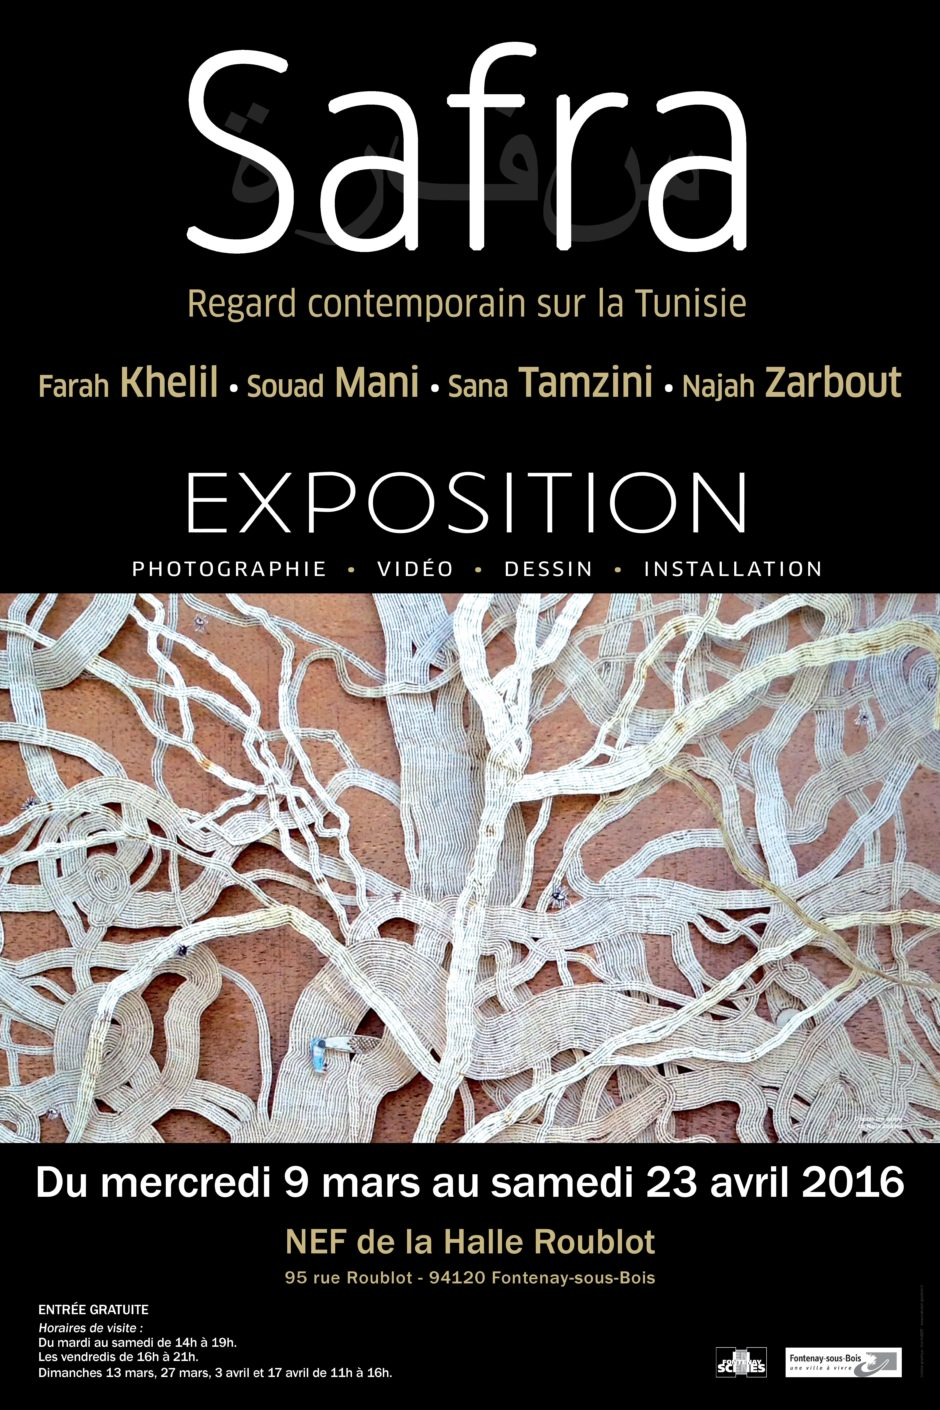 EXPO SAFRA bdef affiche-page-001